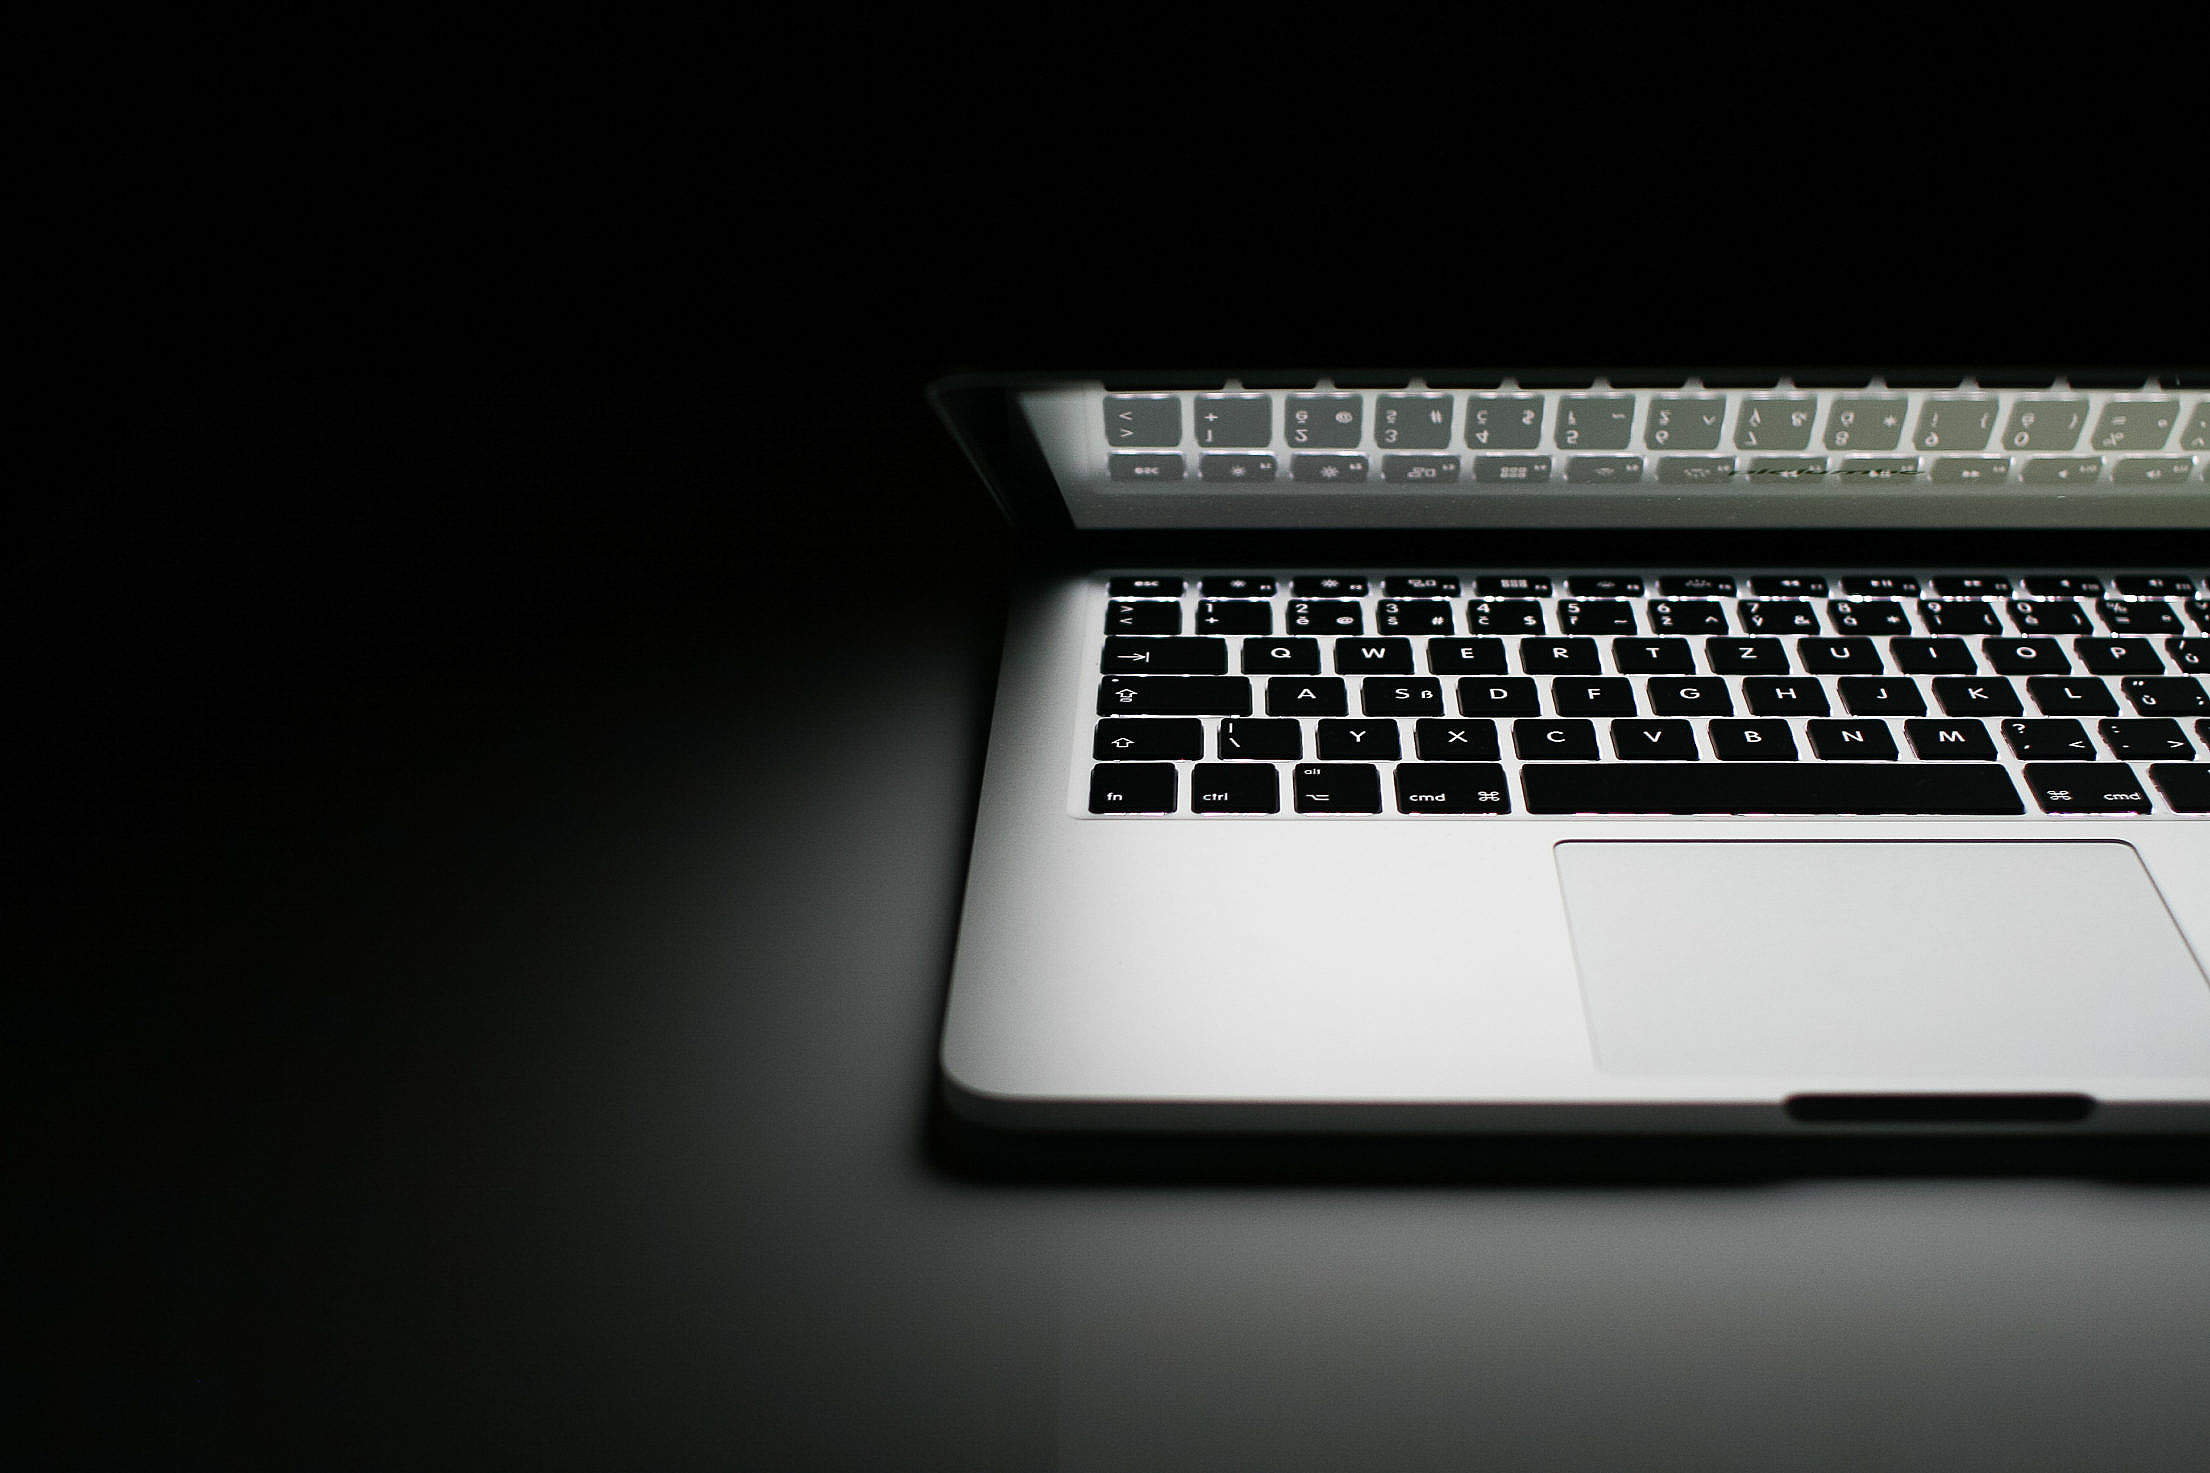 Half of MacBook Pro 2013 Free Stock Photo